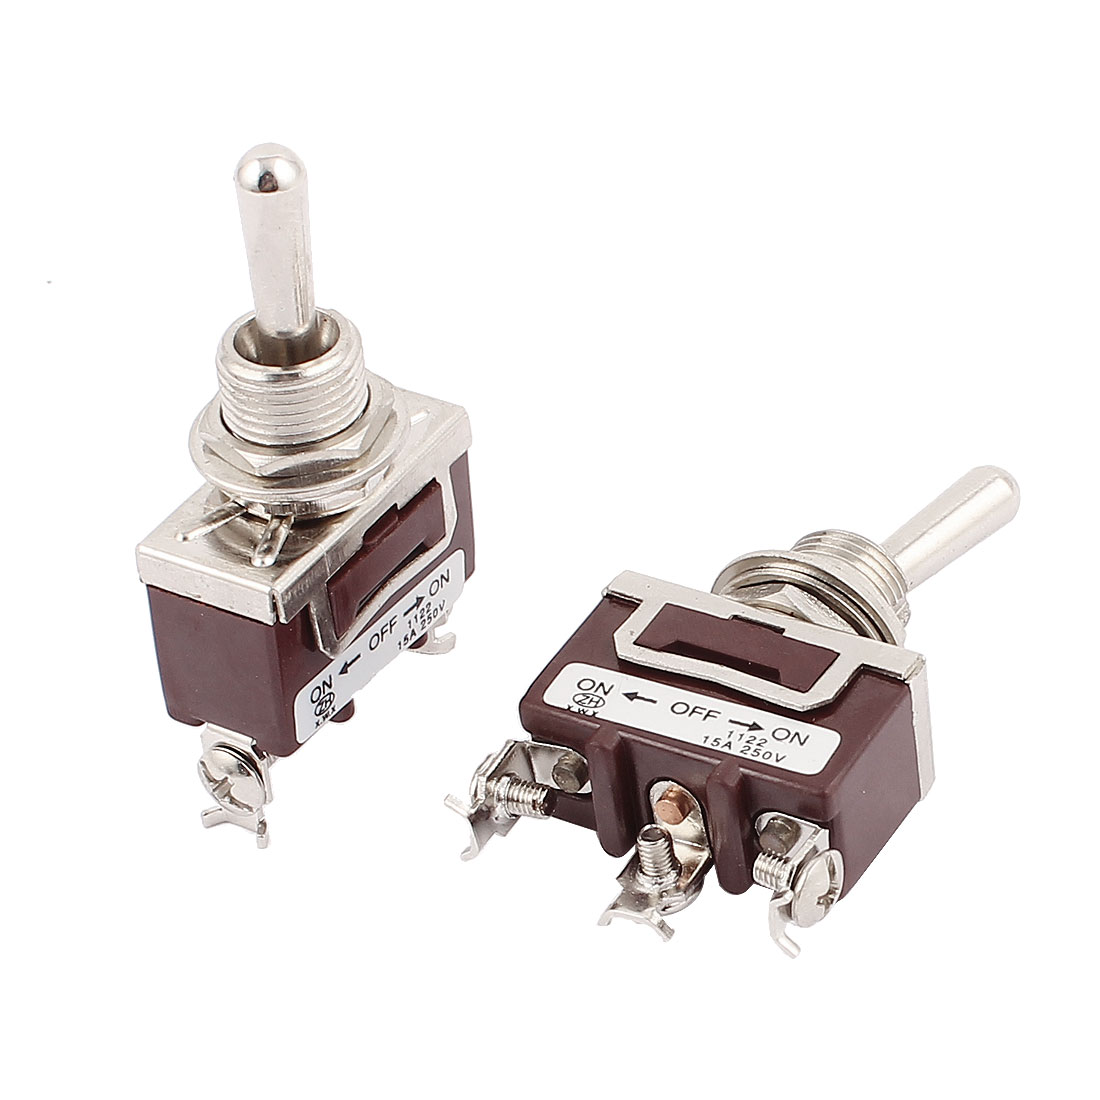 AC 250V 15A SPDT ON/OFF/ON 3 Positions Electric Toggle Switch 2 Pcs